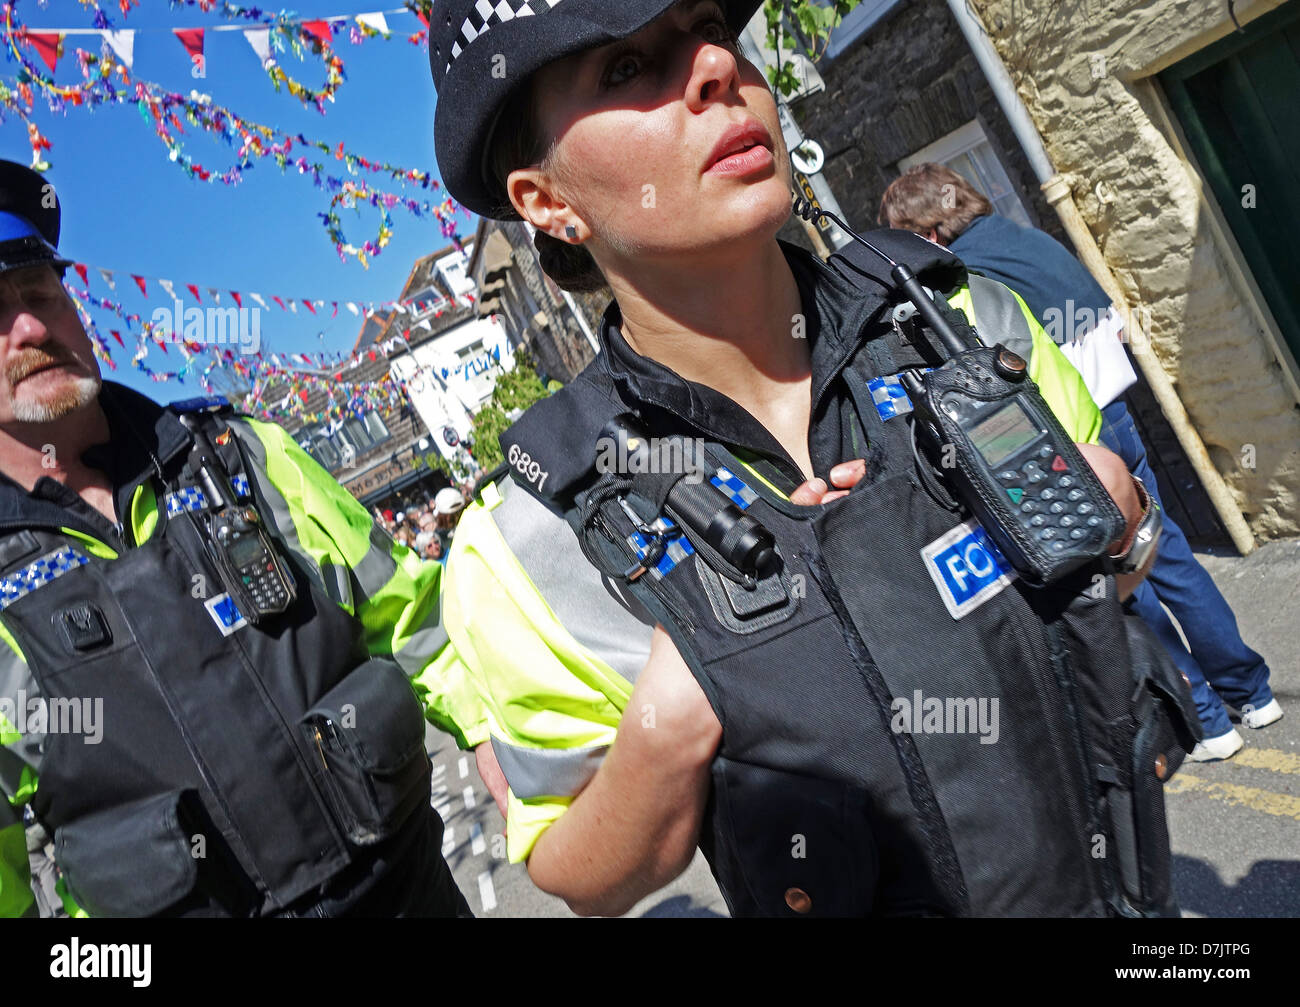 Police on duty in Padstow, UK - Stock Image